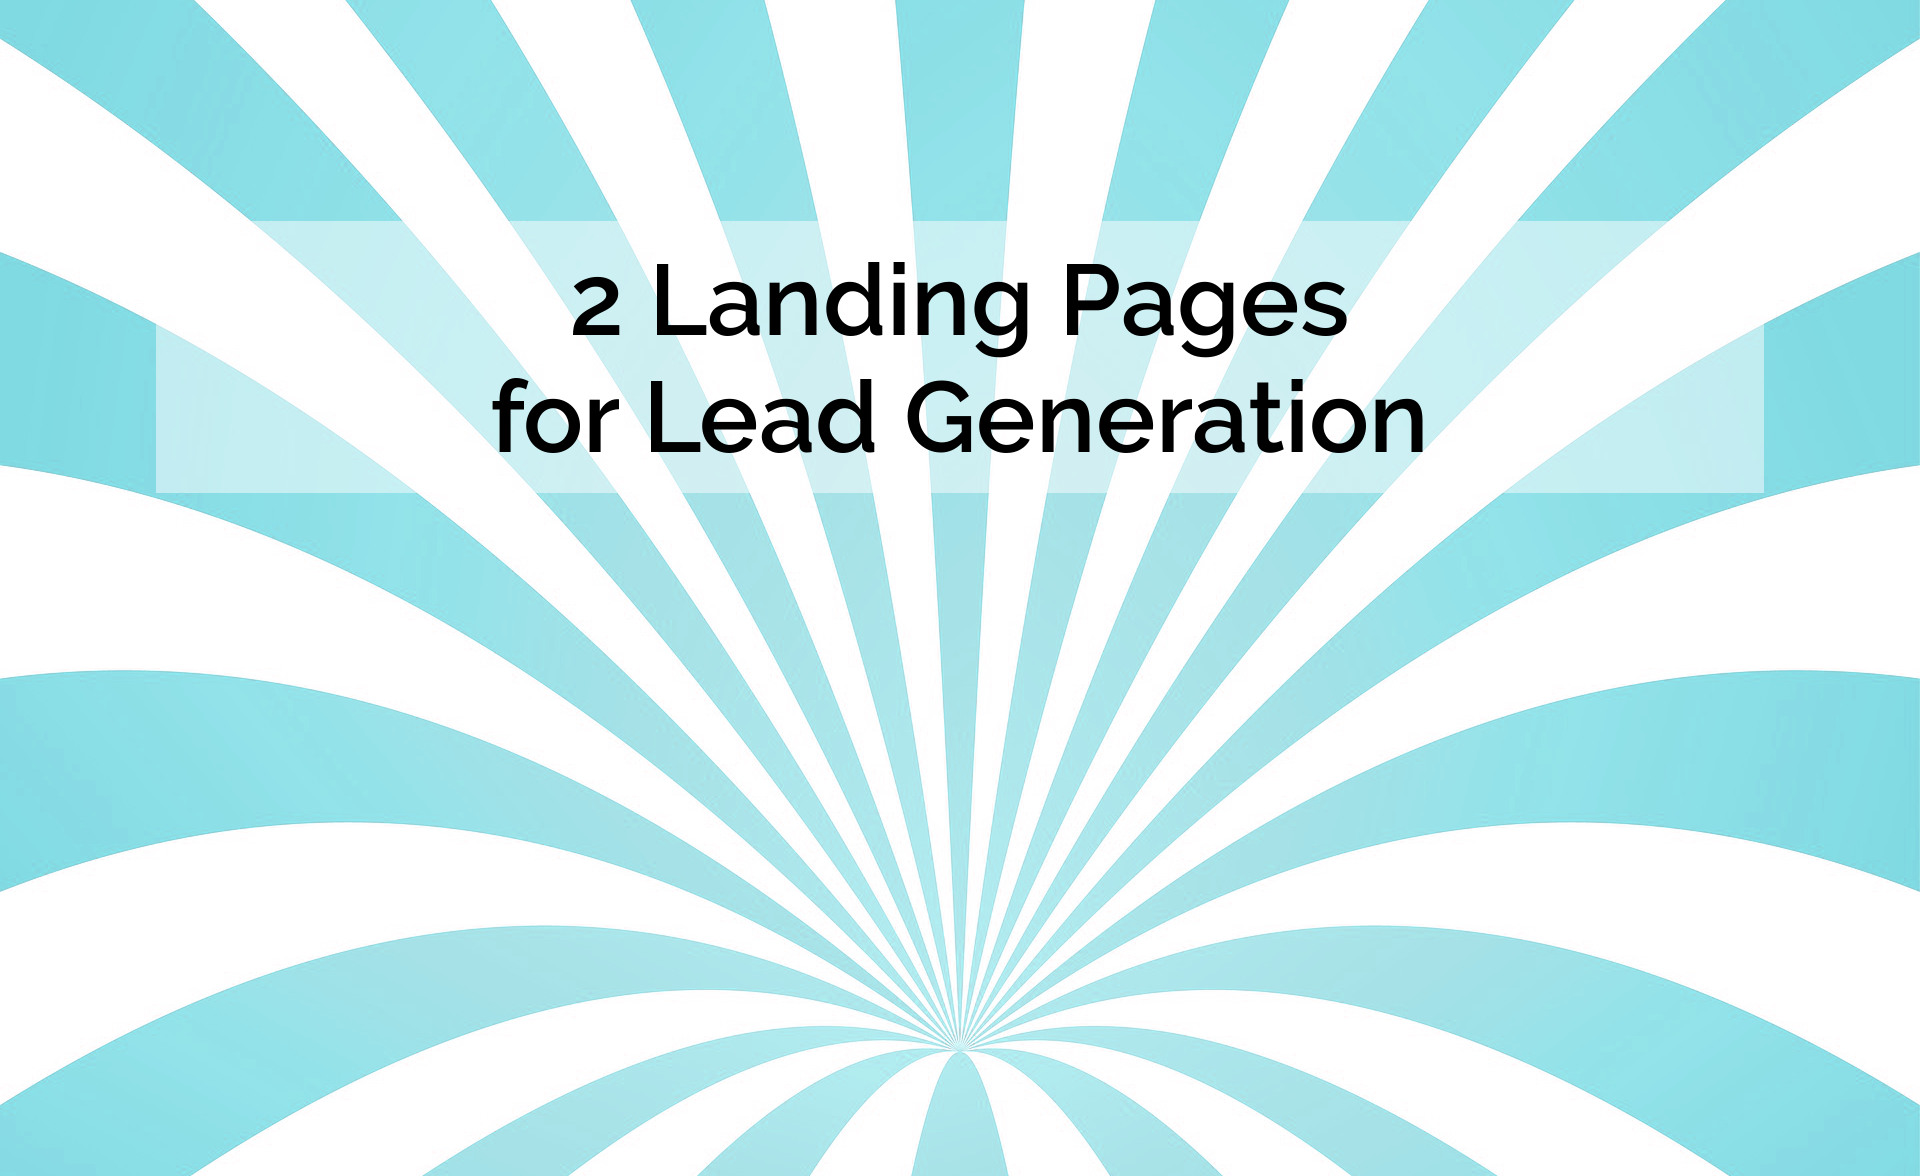 Smart Site includes 2 landing pages for lead generation